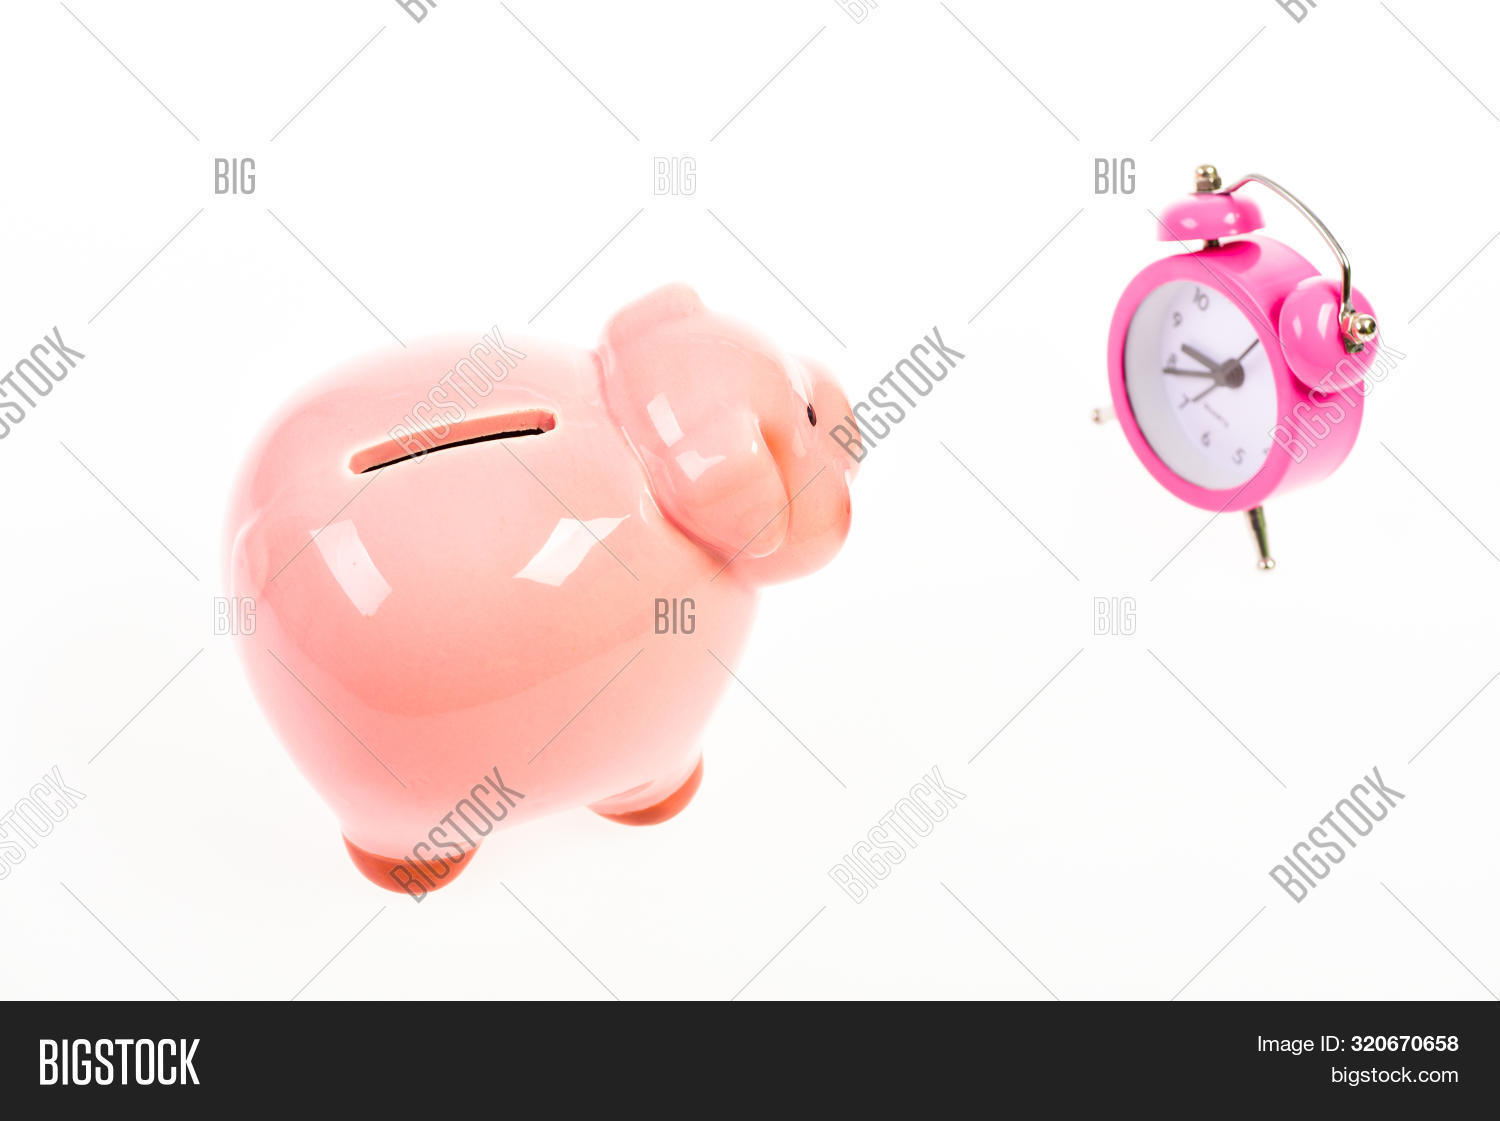 It Is Time To Pay. Piggy Bank Pink Pig And Little Alarm Clock. Financial Crisis. Banking Account. Ba